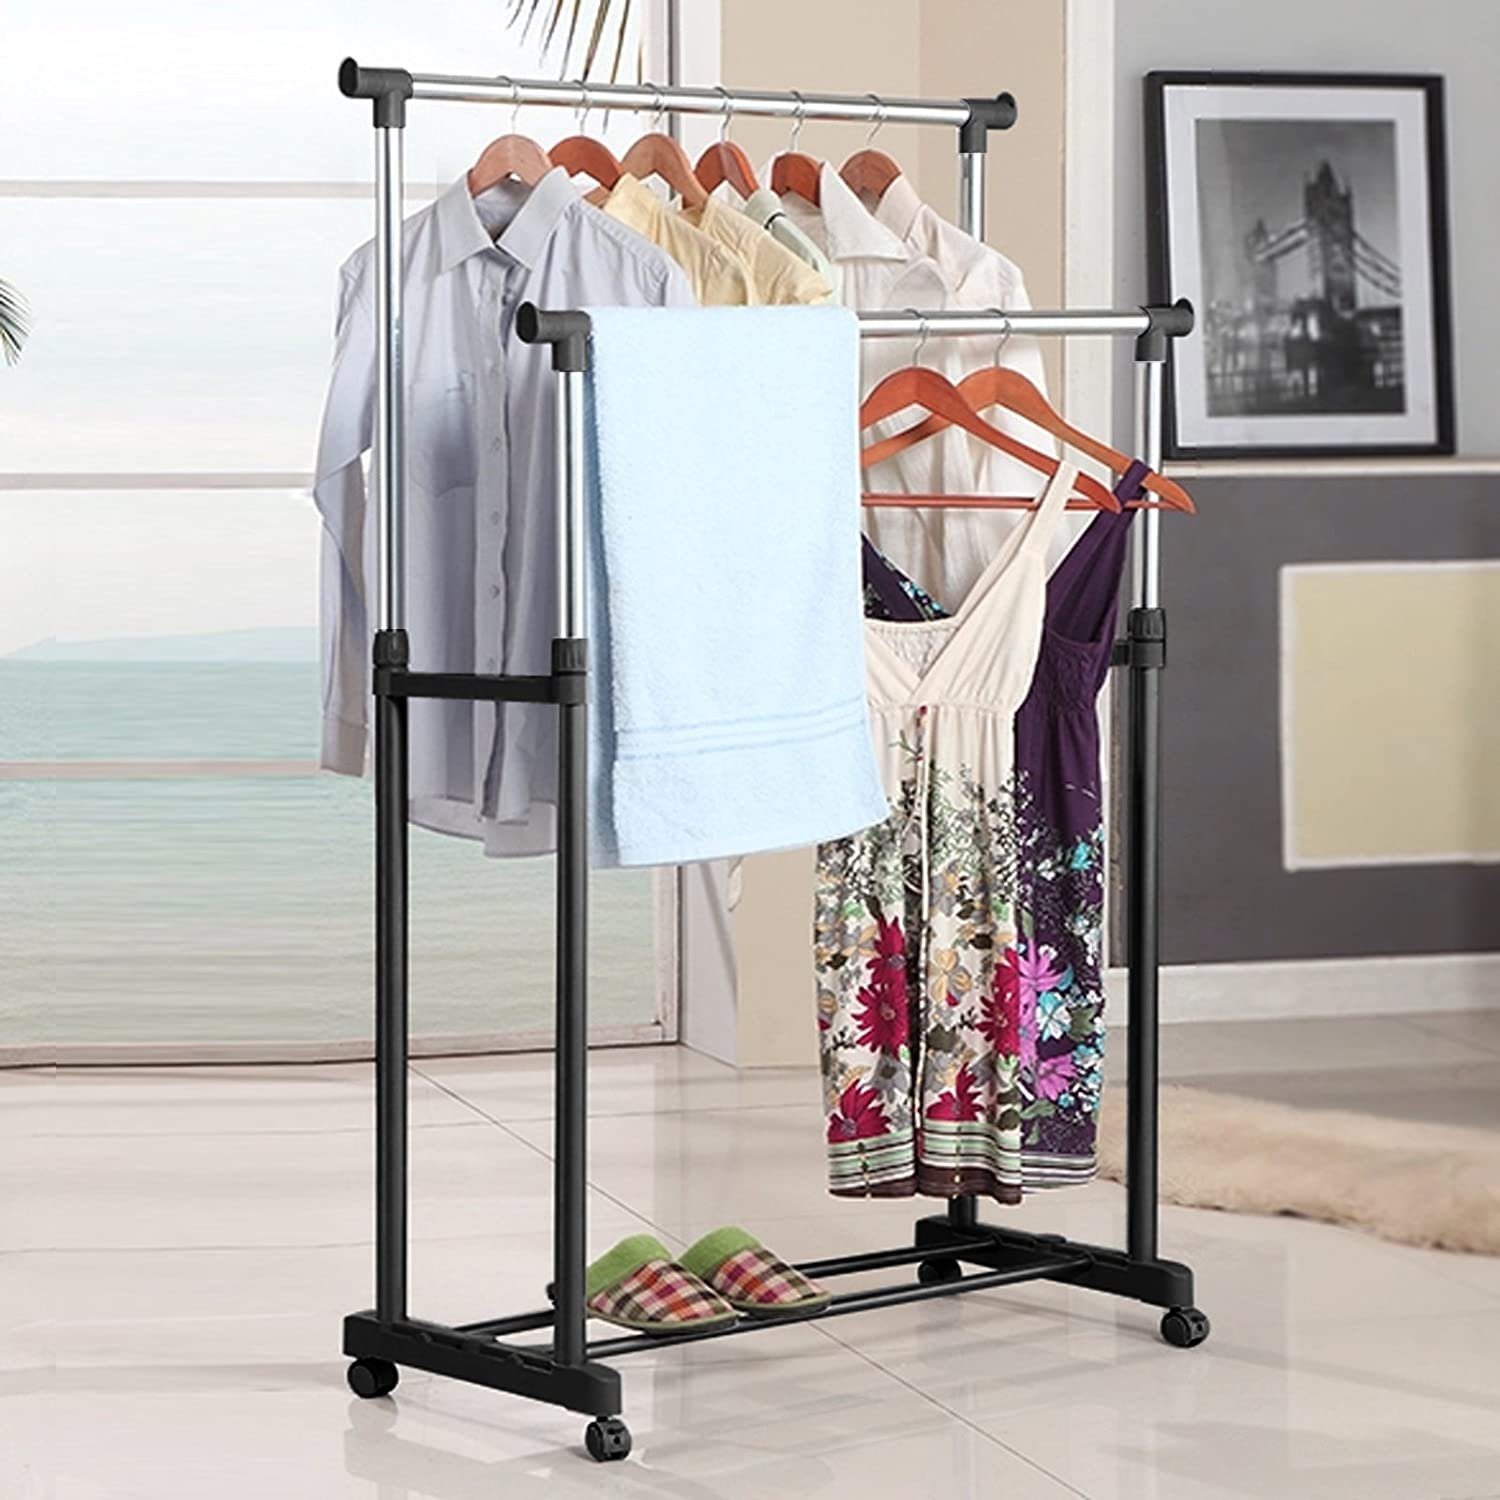 Amazon.com: Hosmat Double Rails Clothing Garment Rack ...